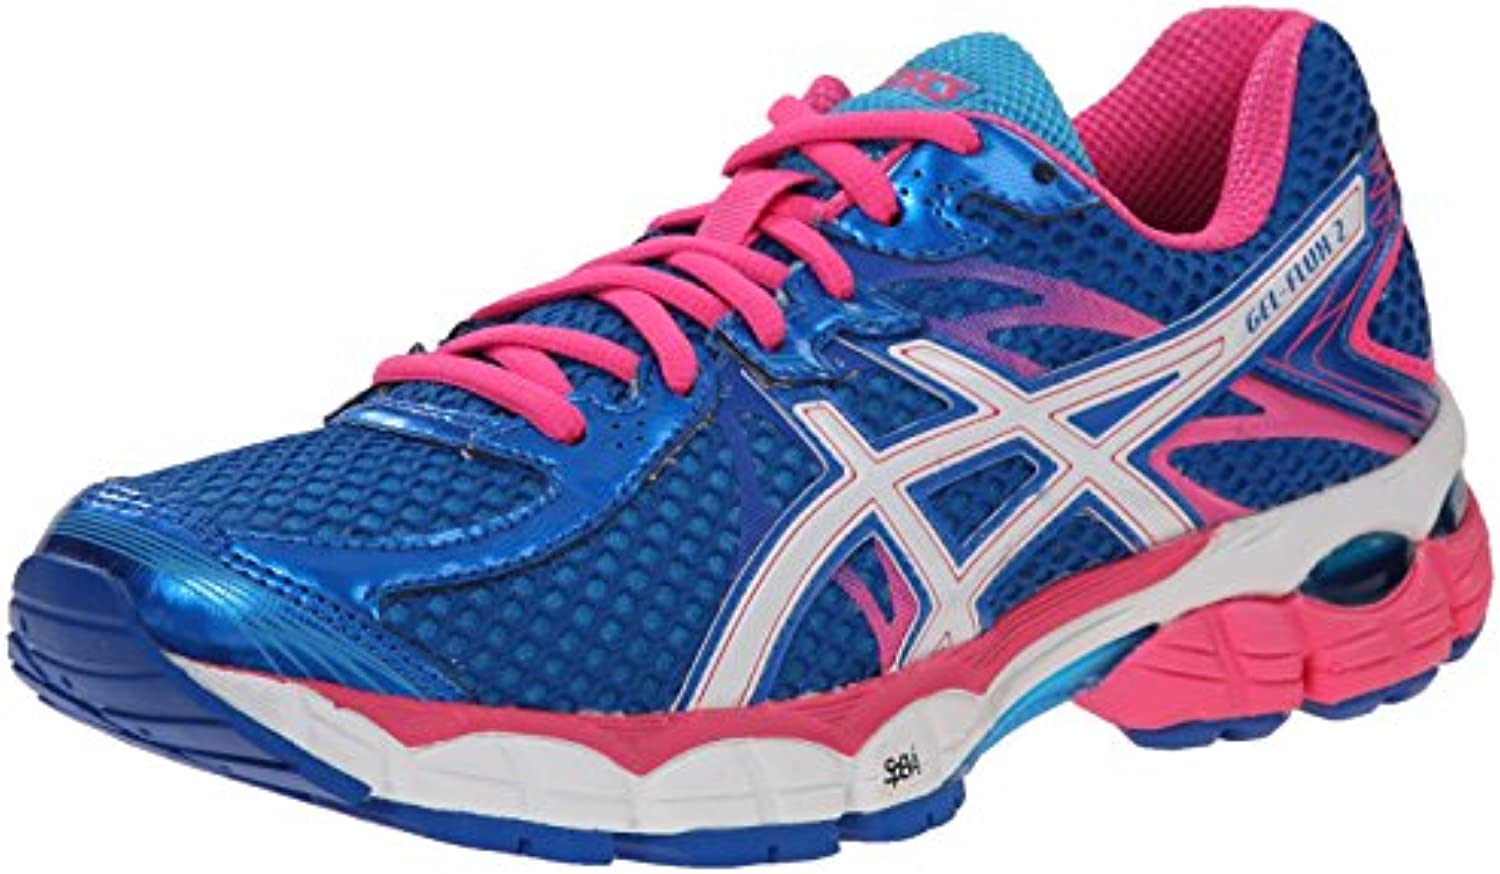 Asics Gel Flux 2 zapatillas de running